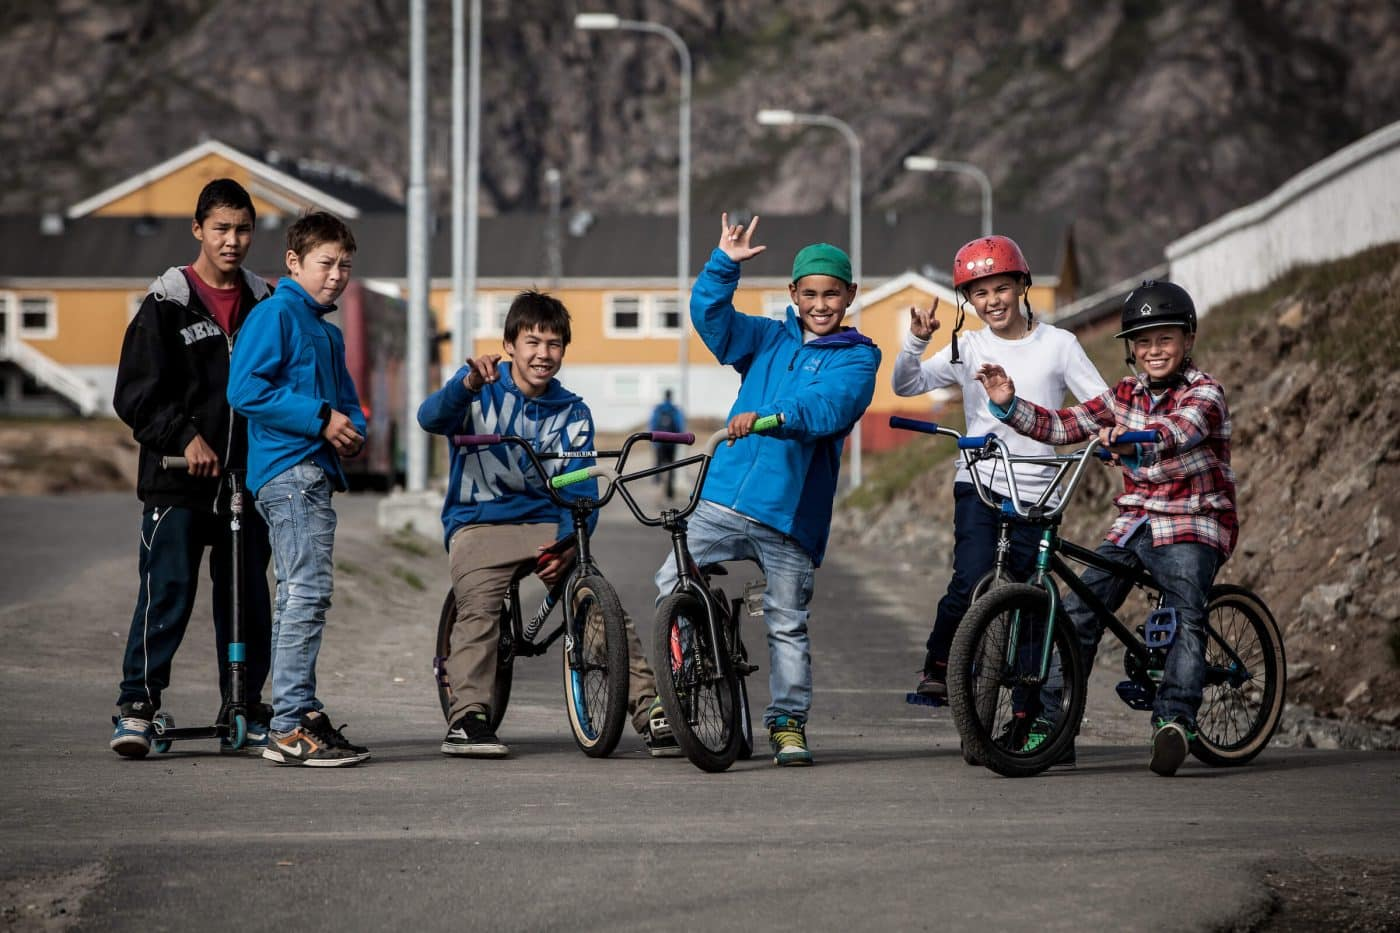 Boys in the streets of Sisimiut in Greenland. By Mads Pihl